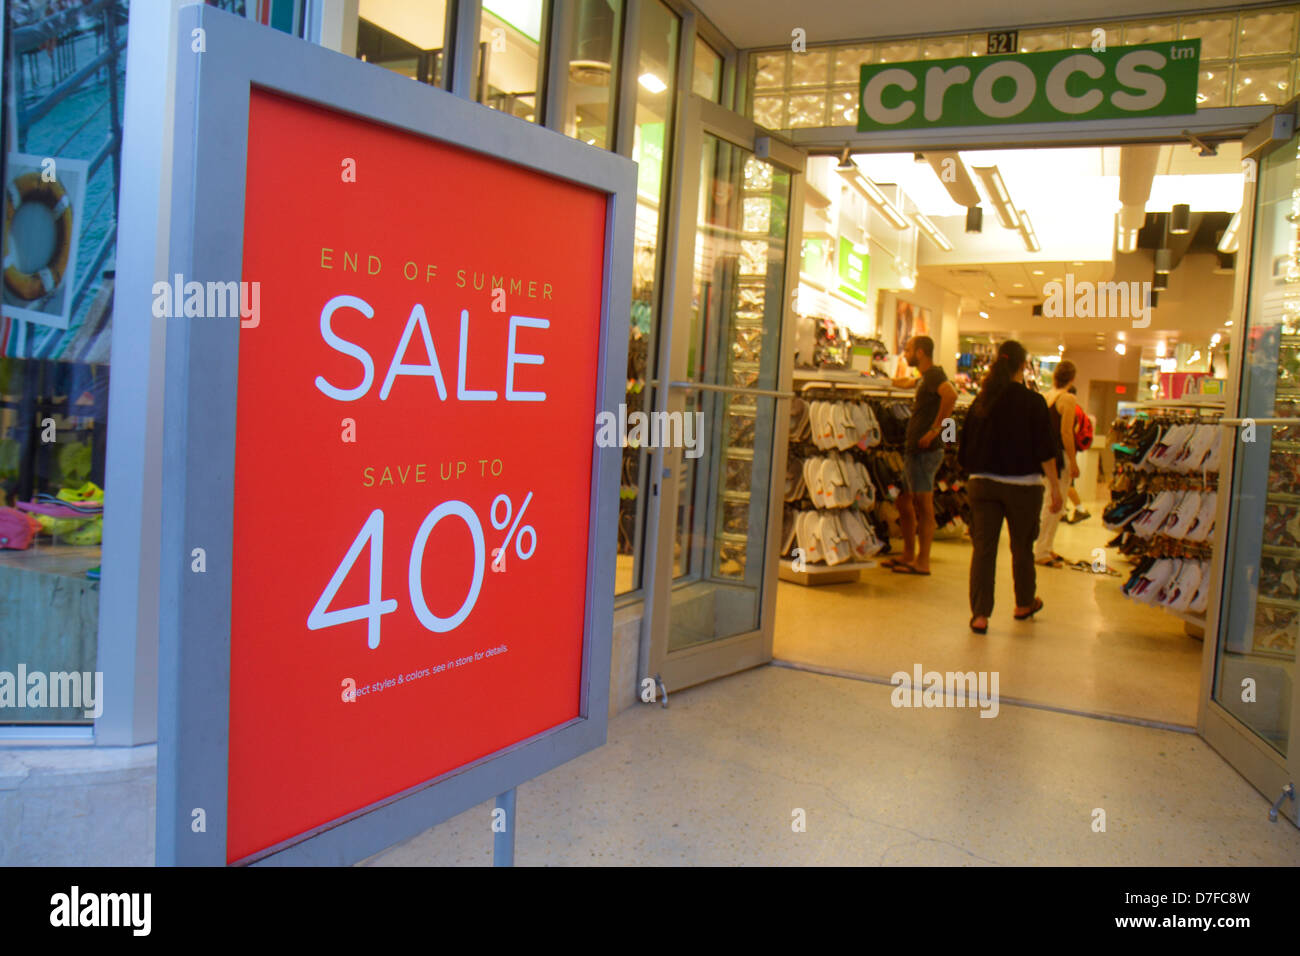 aacf84a3d Miami Beach Florida Lincoln Road pedestrian mall shopping shoe store front  entrance sign end of summer sale 40% off Crocs